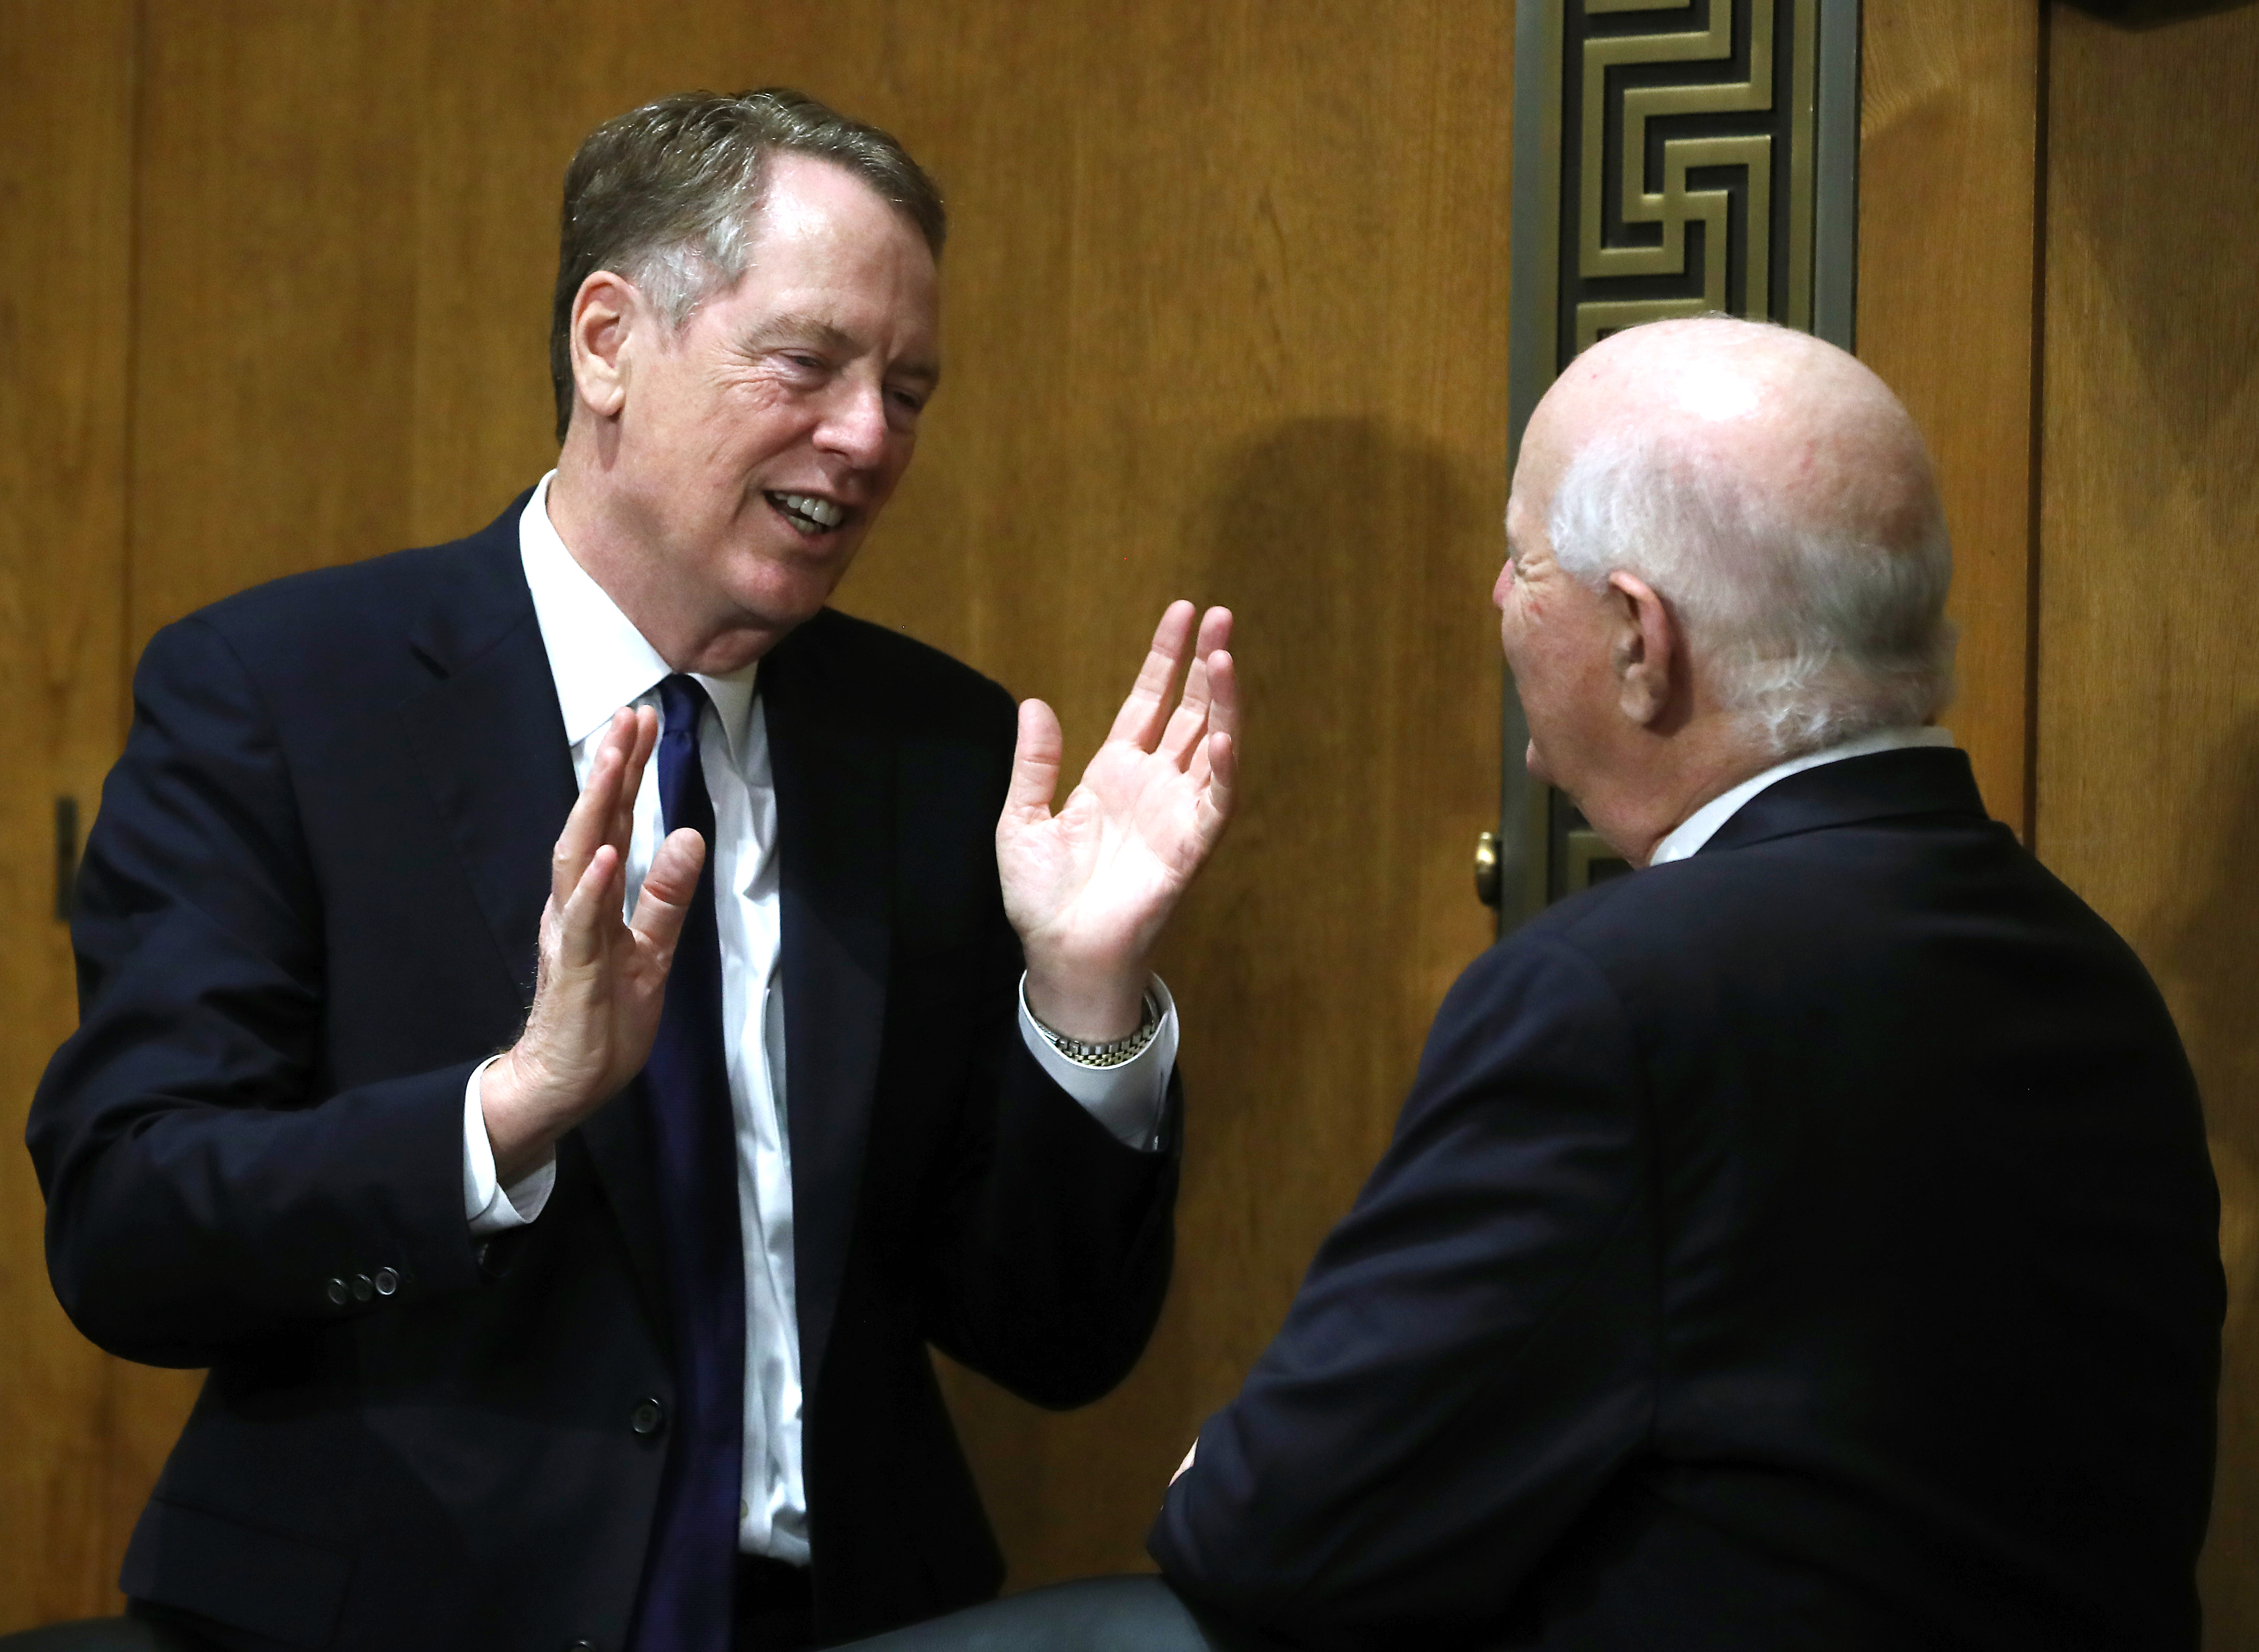 U.S. Trade RepresentativeRobert Lighthizer(L) talks with Sen. Ben Cardin during a Senate Finance Committee hearing on June 18, 2019 in Washington, DC. (Photo by Mark Wilson/Getty Images)